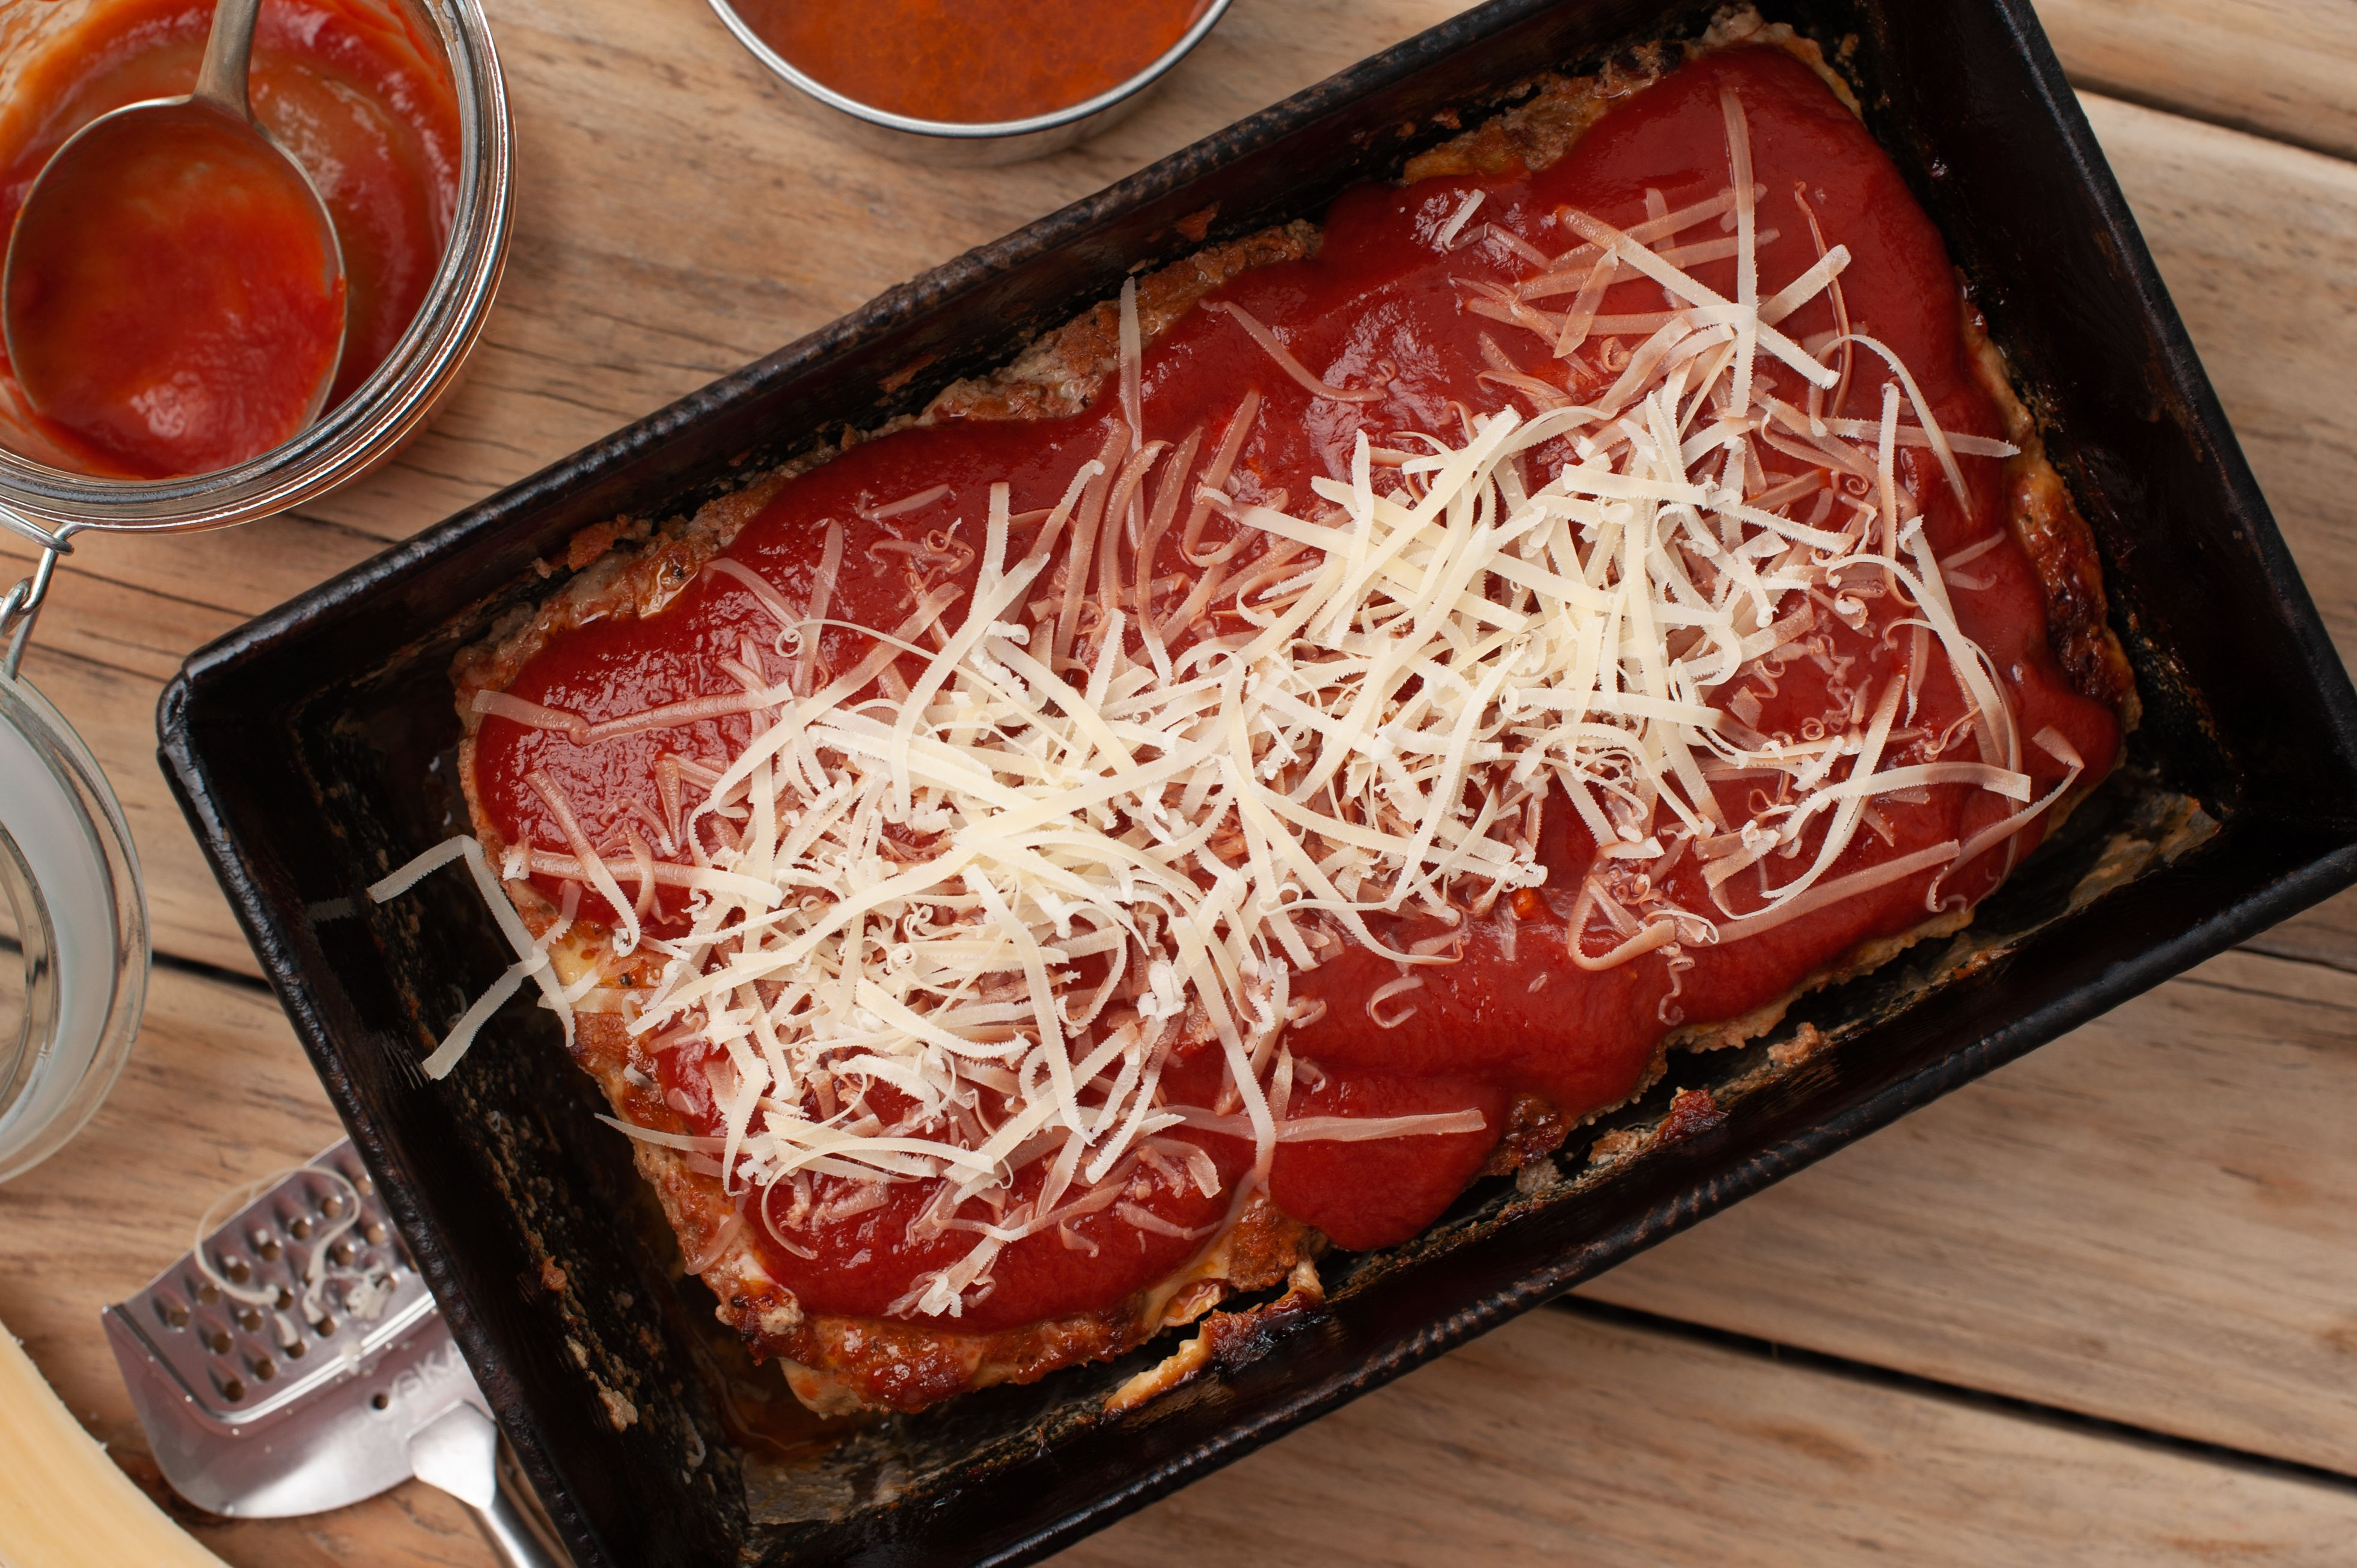 Pour cheese on meatloaf